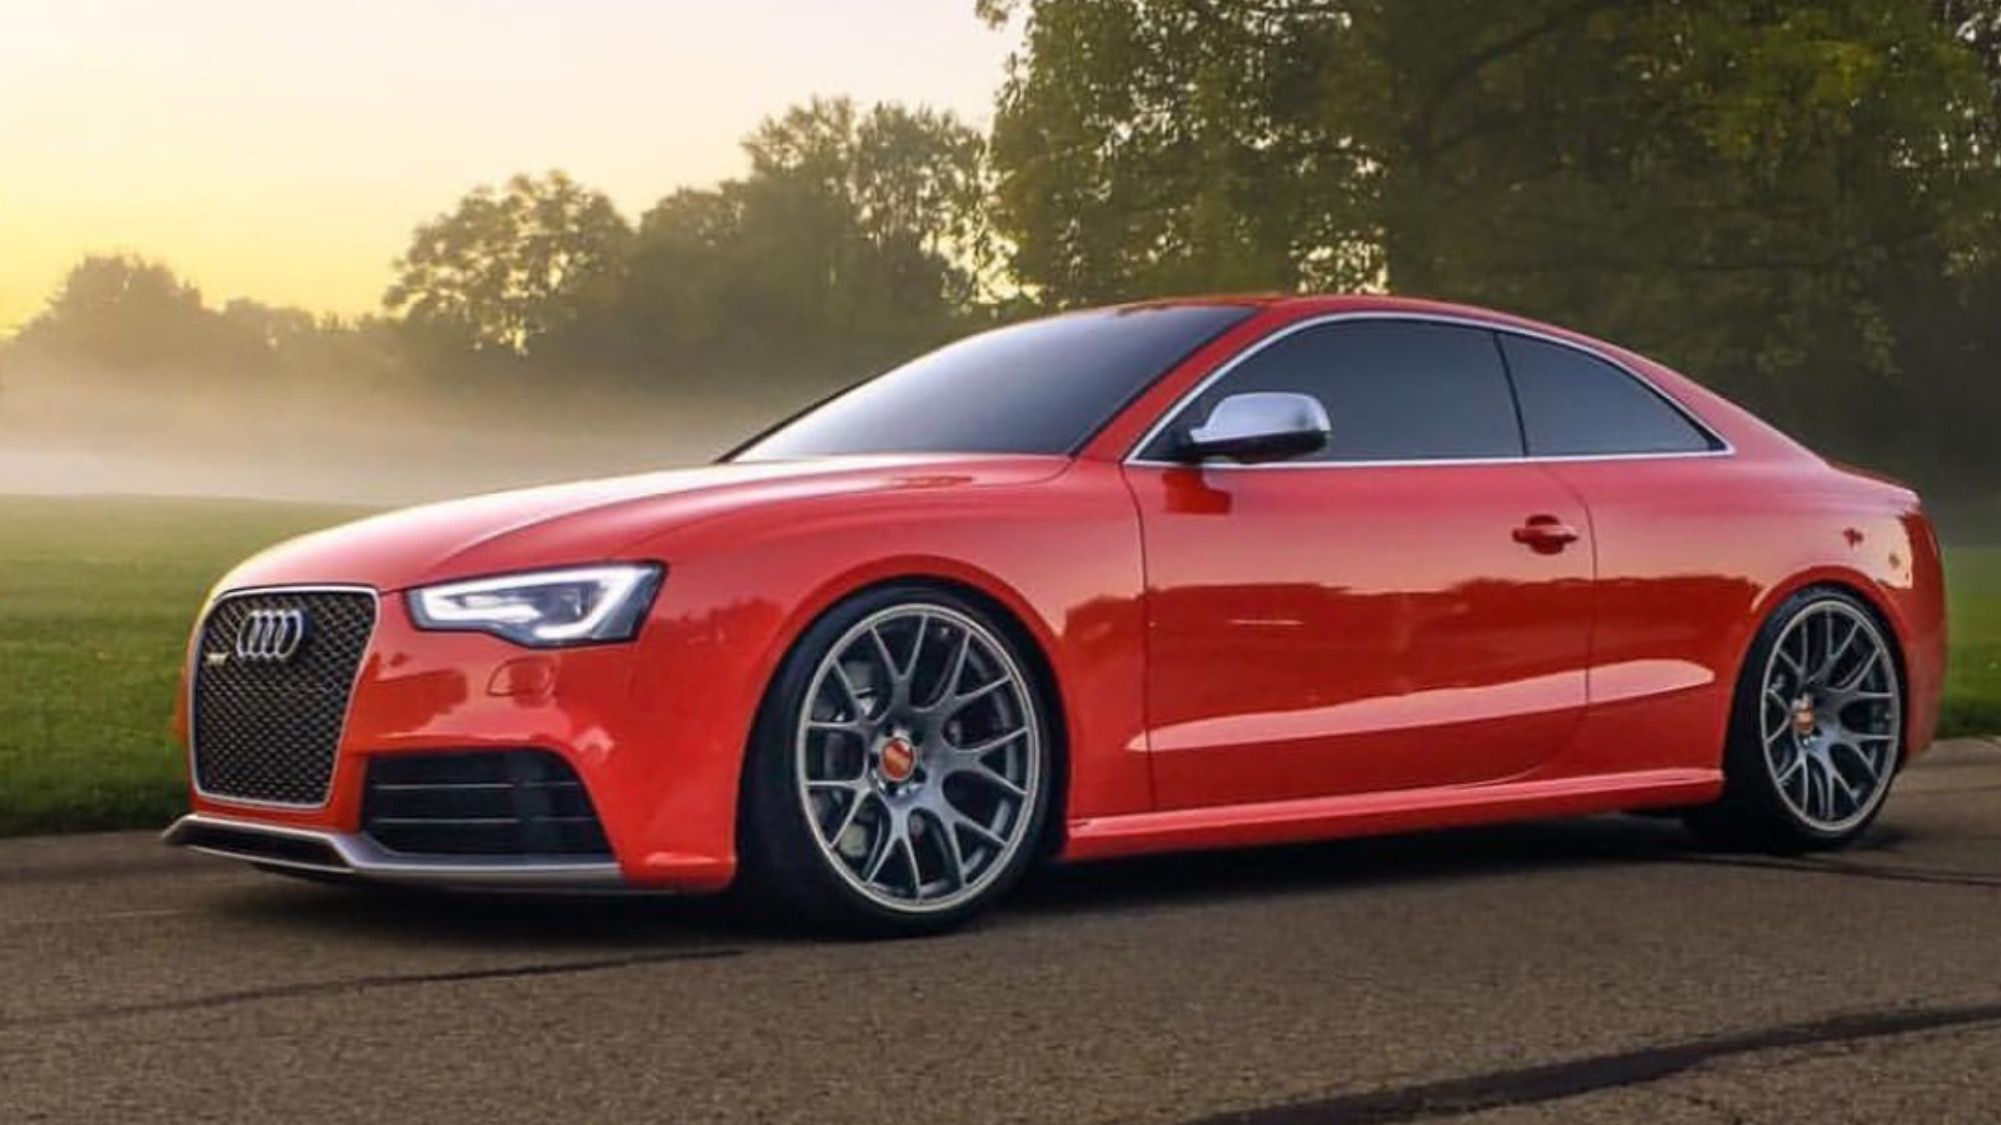 Pin by Sonny Sethaphanich on Rides Audi a5, Audi s5